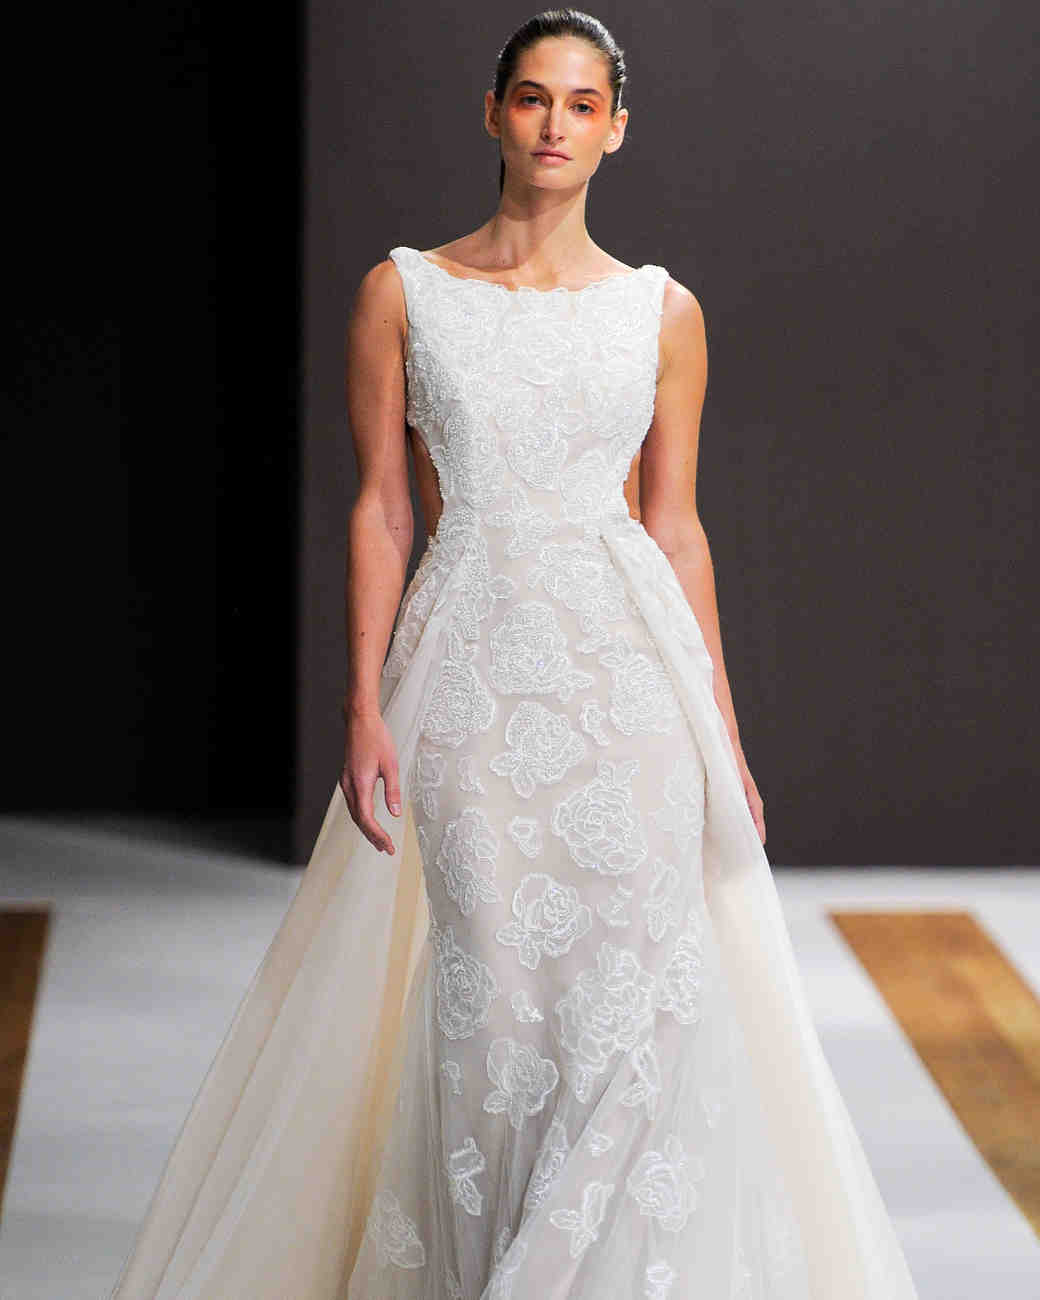 mark zunino wedding dress fall 2018 cut-out a-line sleeveless